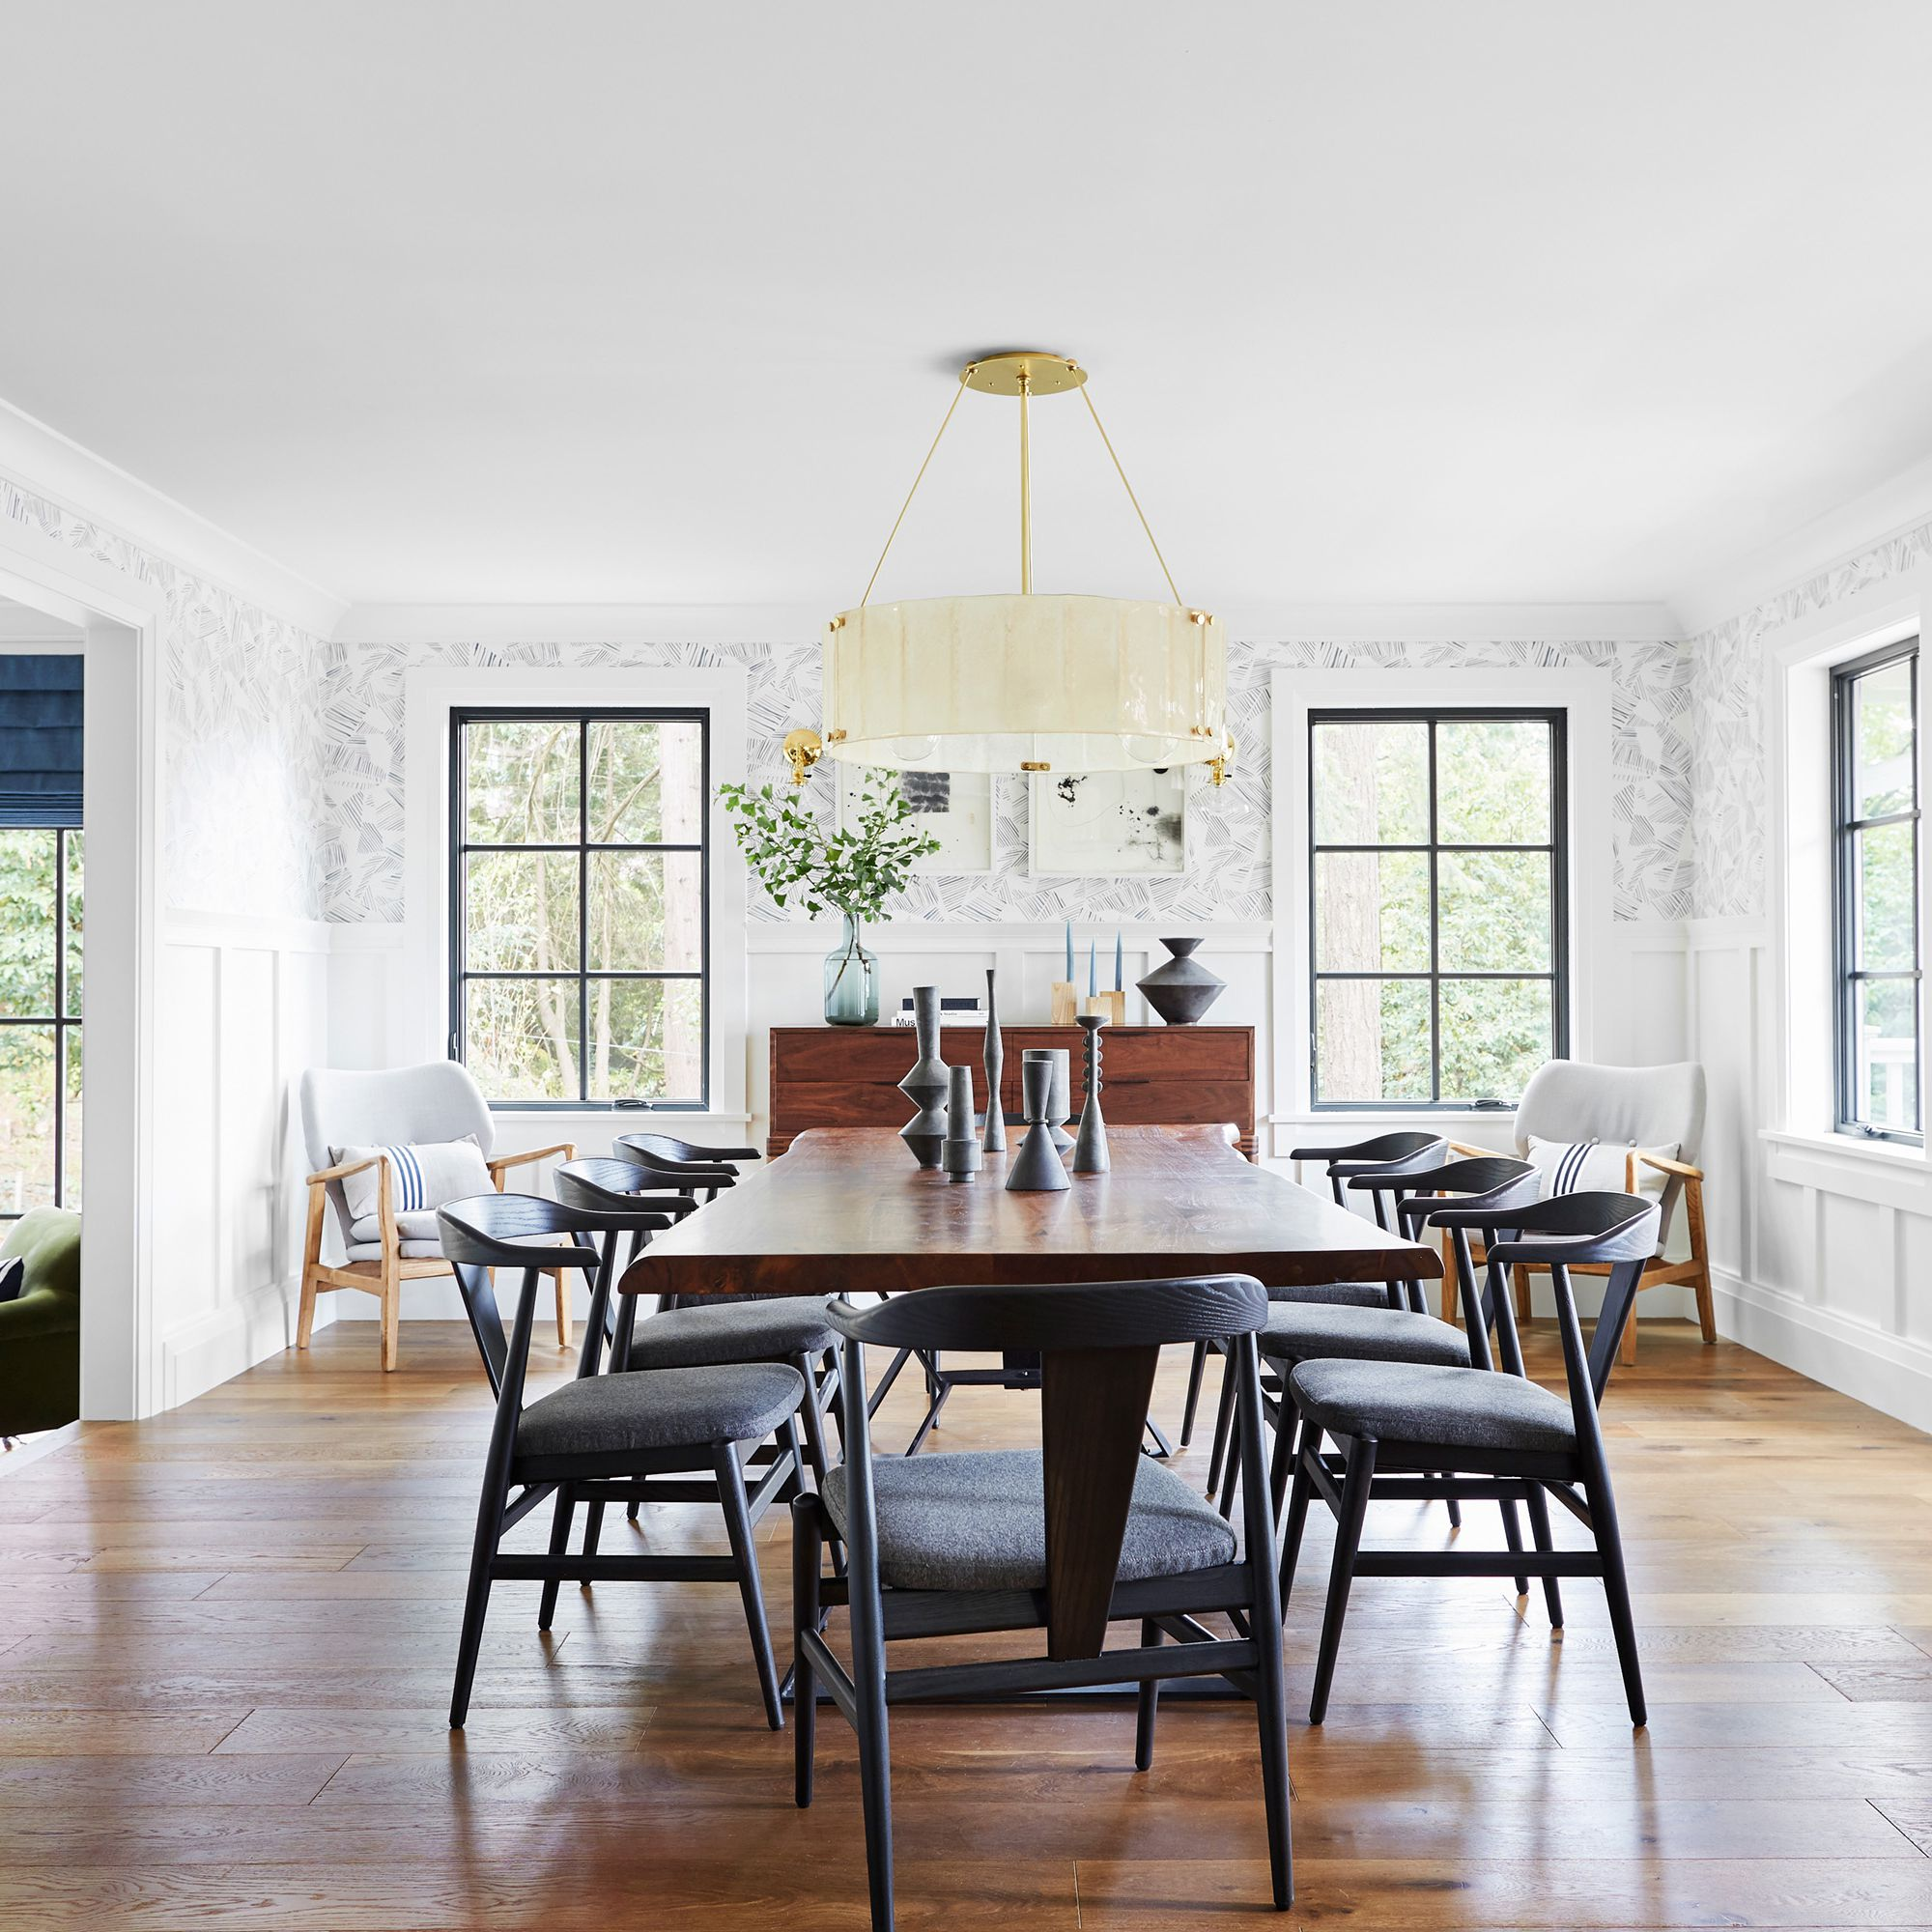 Decorating Trends On The Way Out In 2020 According To Top Influencers